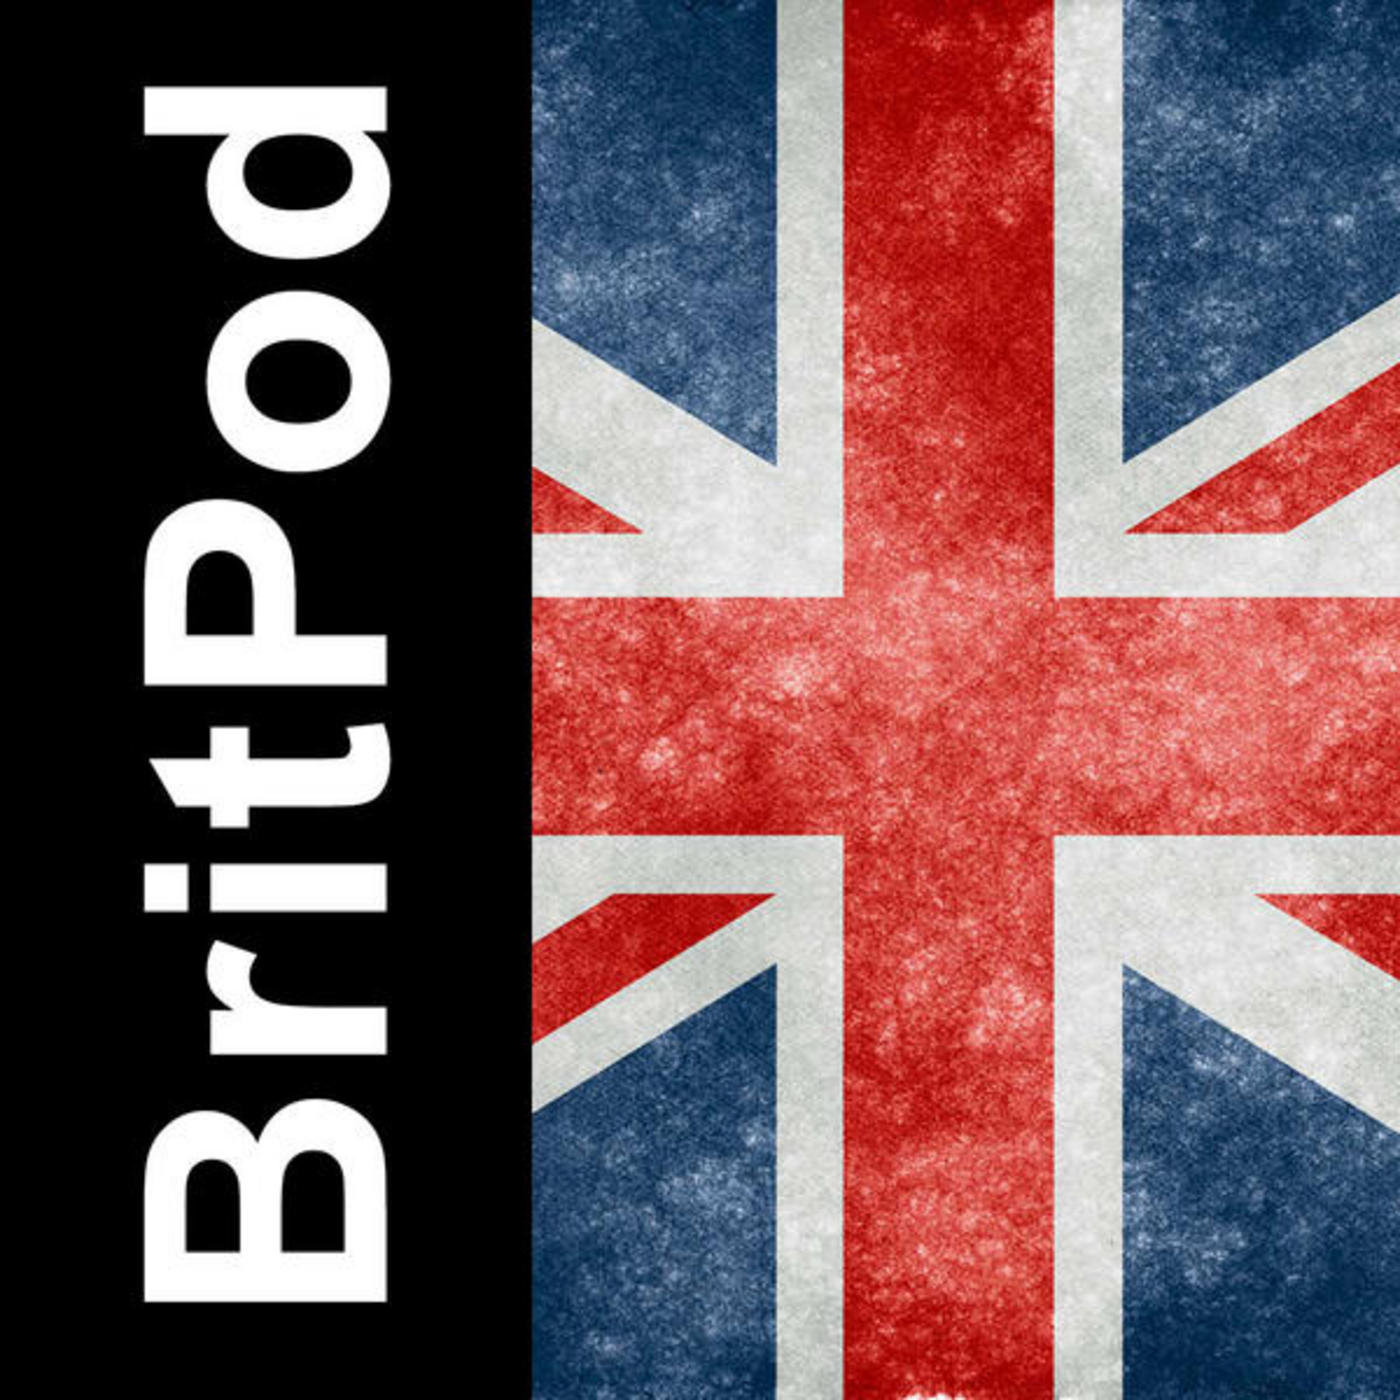 BritPod 86: Recorded on May 13th, 2011